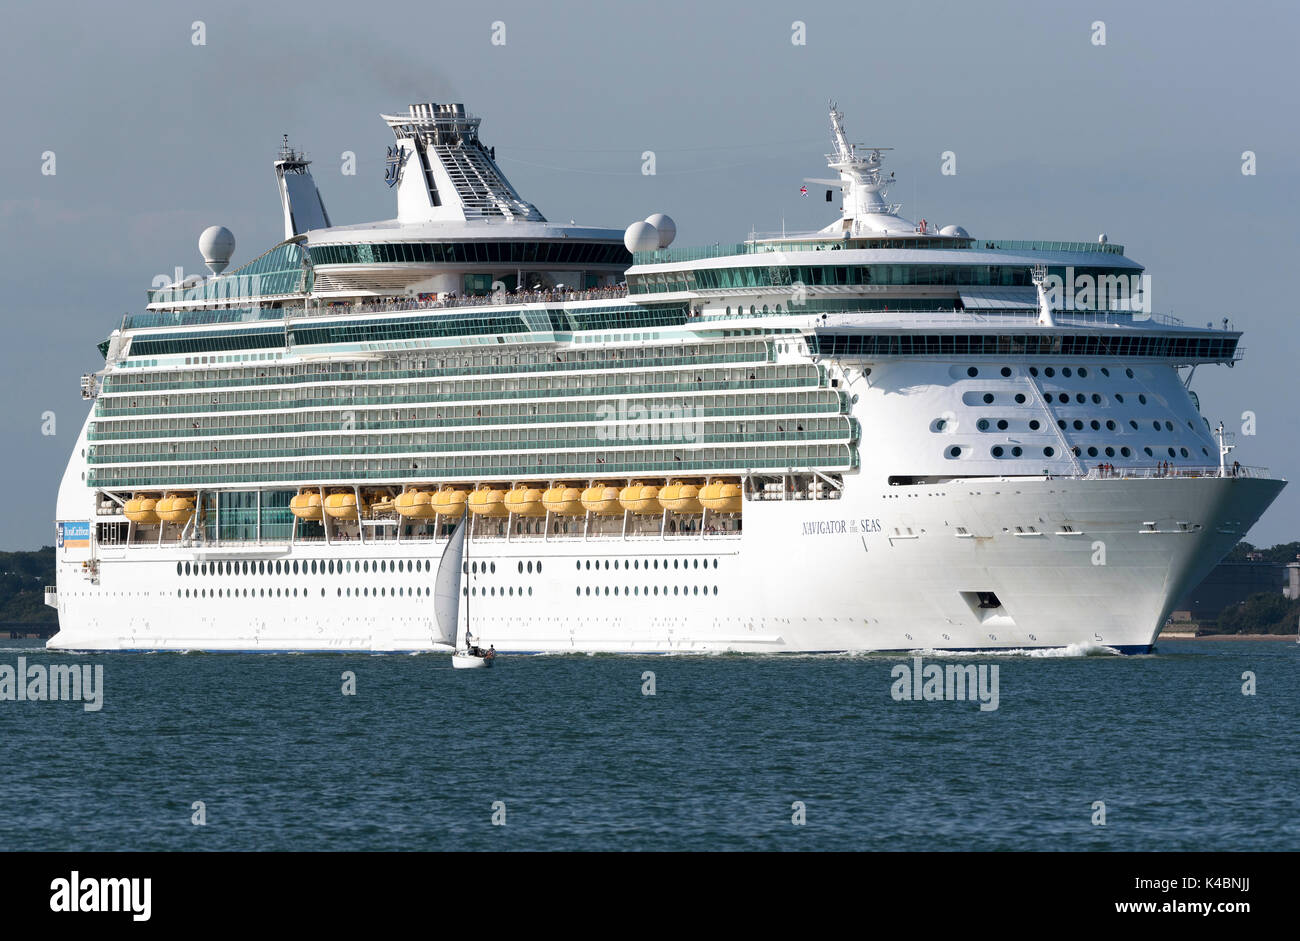 Cruise ship Navigator of the Seas underway on Southampton Water England UK. August 2017 - Stock Image